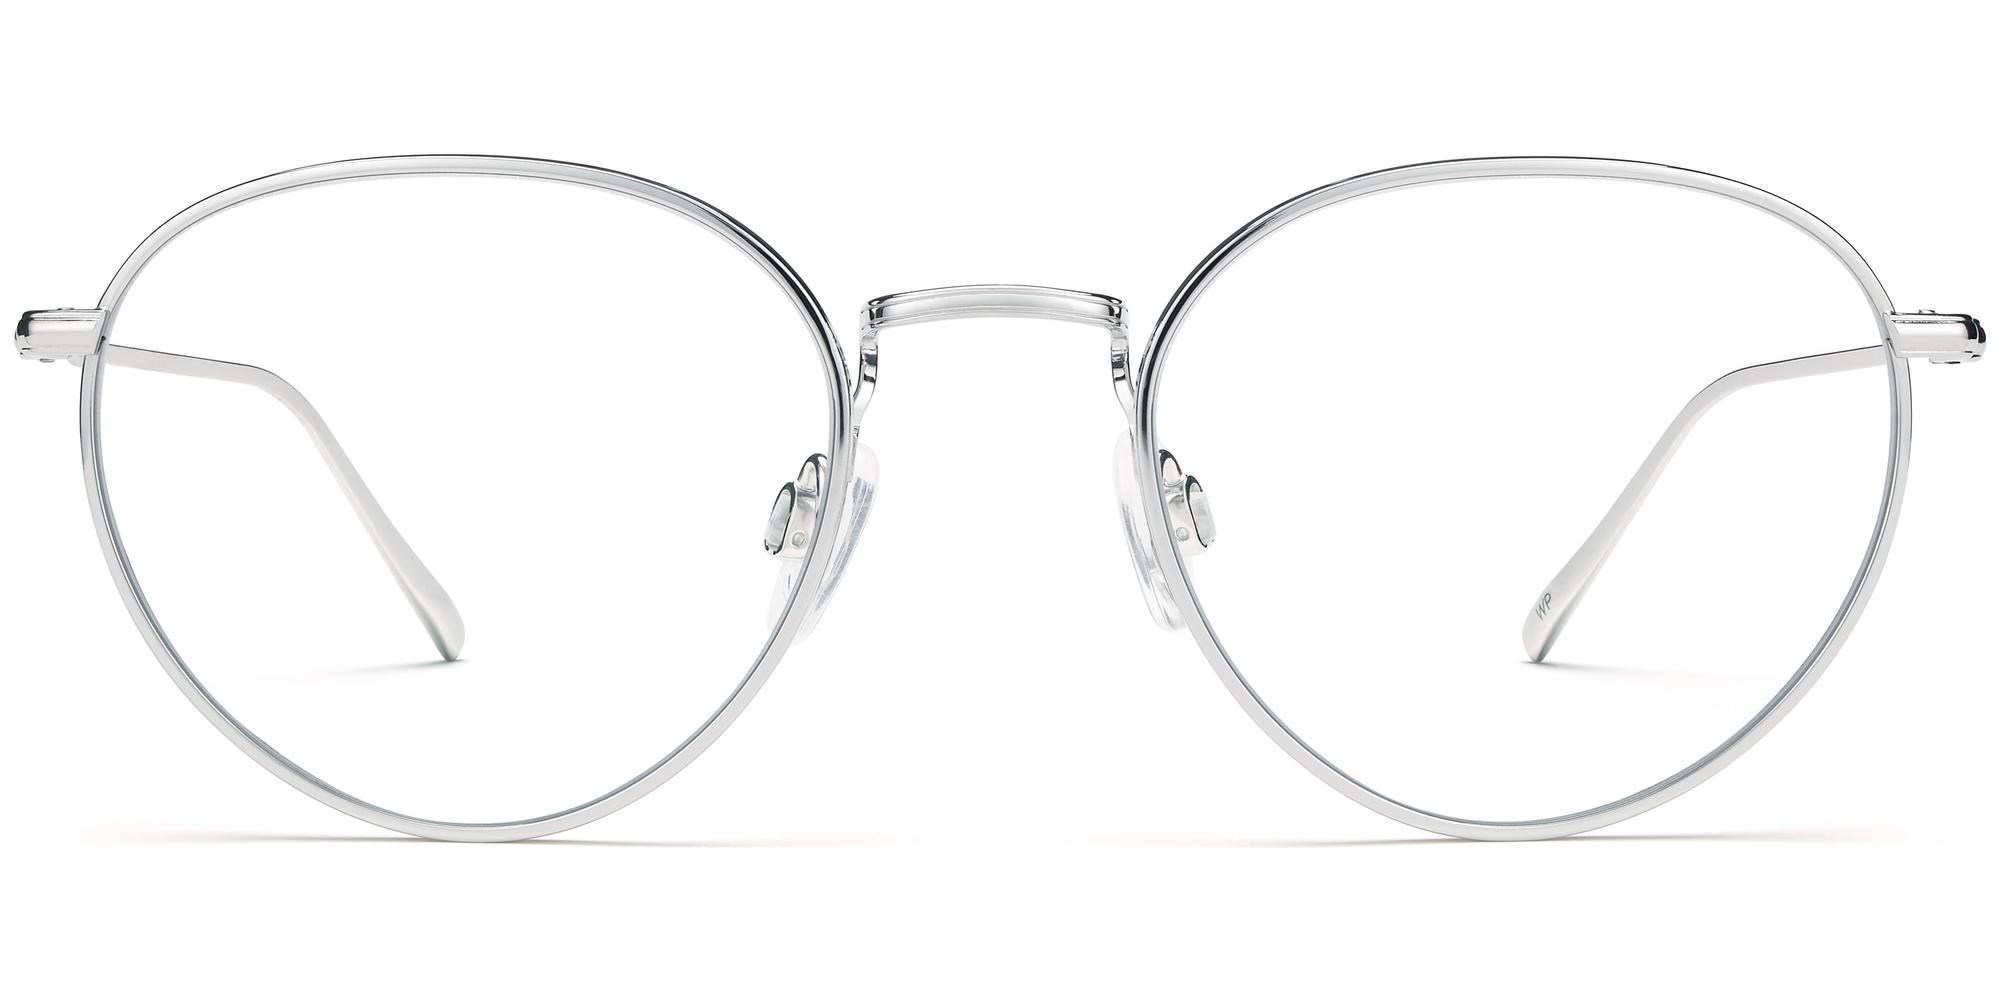 Front View Image of Ezra Eyeglasses Collection, by Warby Parker Brand, in Burnished Silver Color